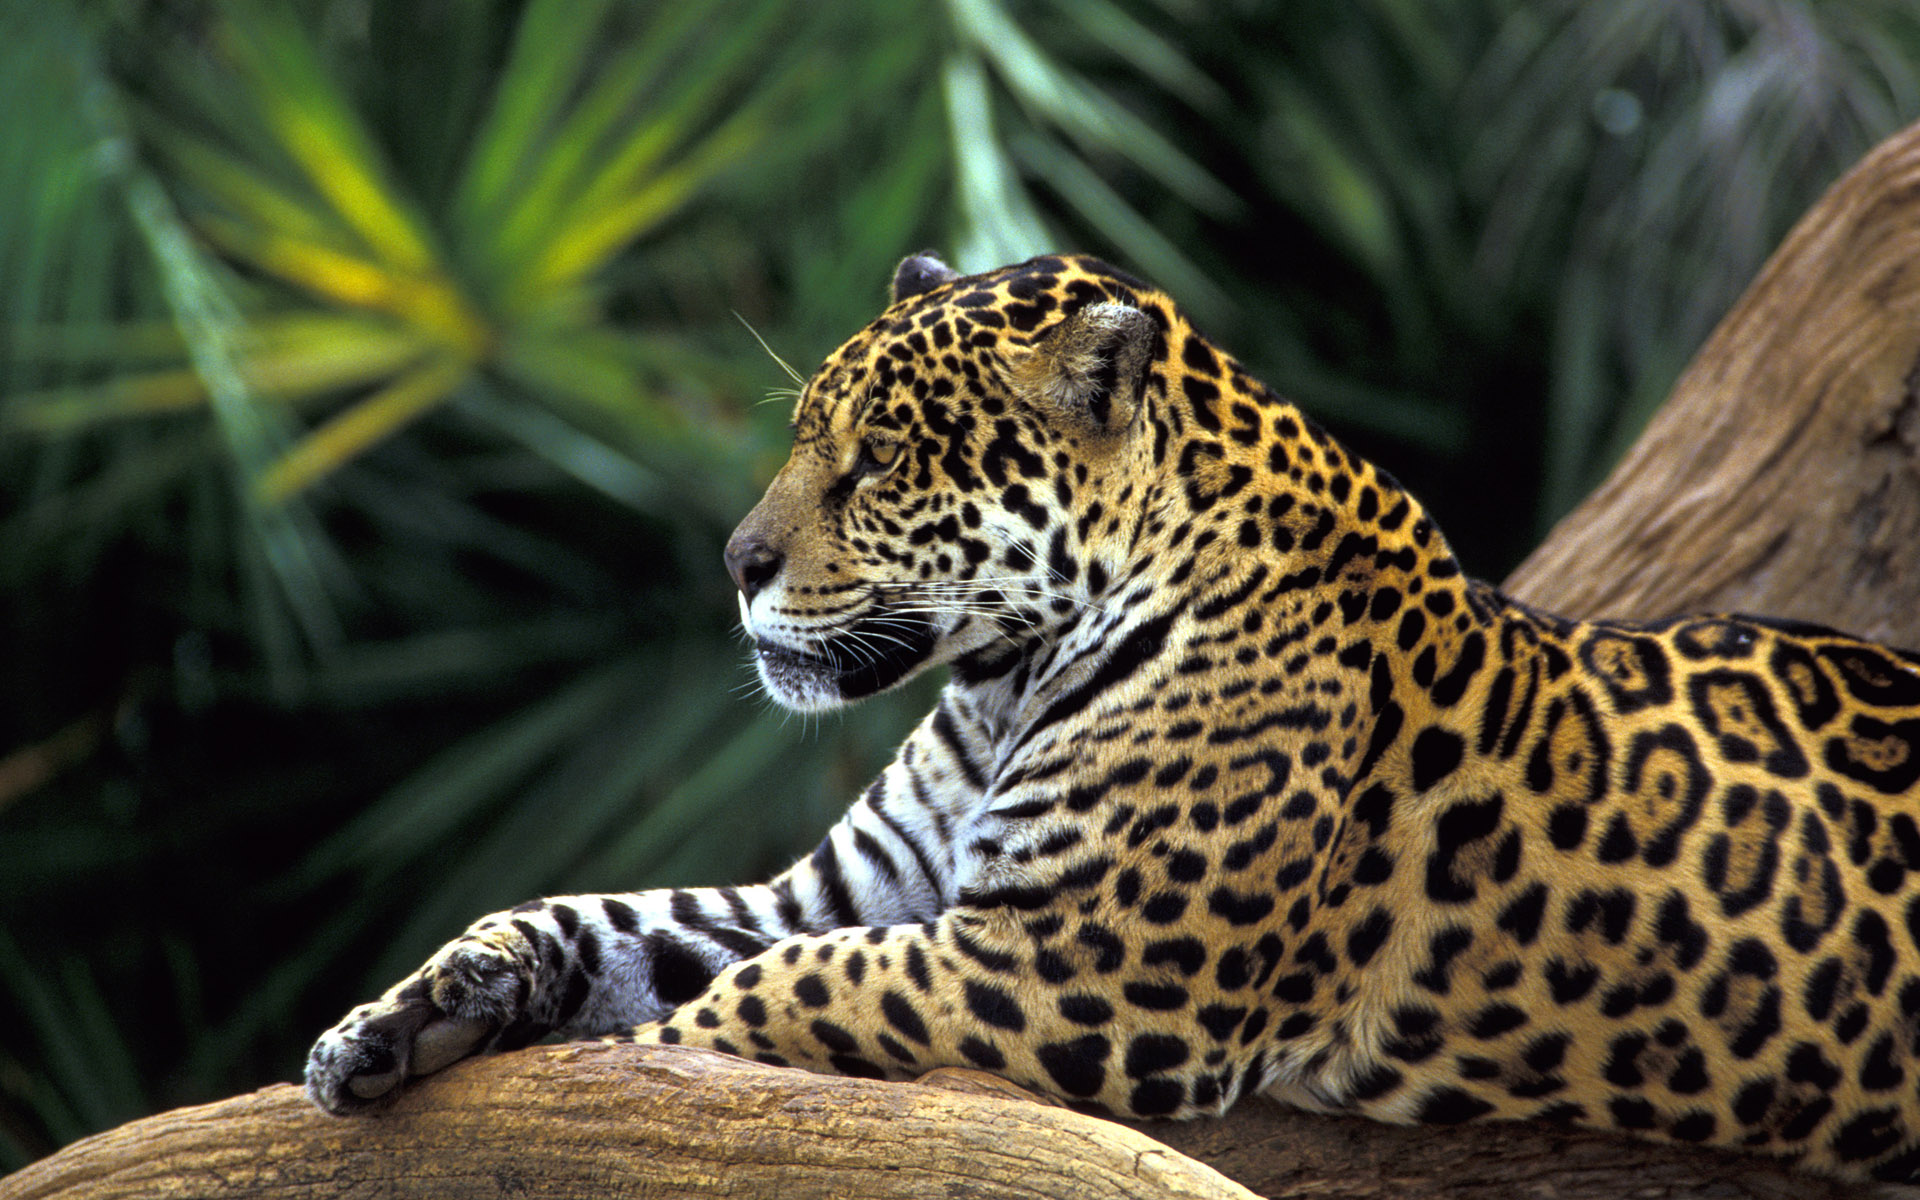 Rainforest Jaguar Wallpaper